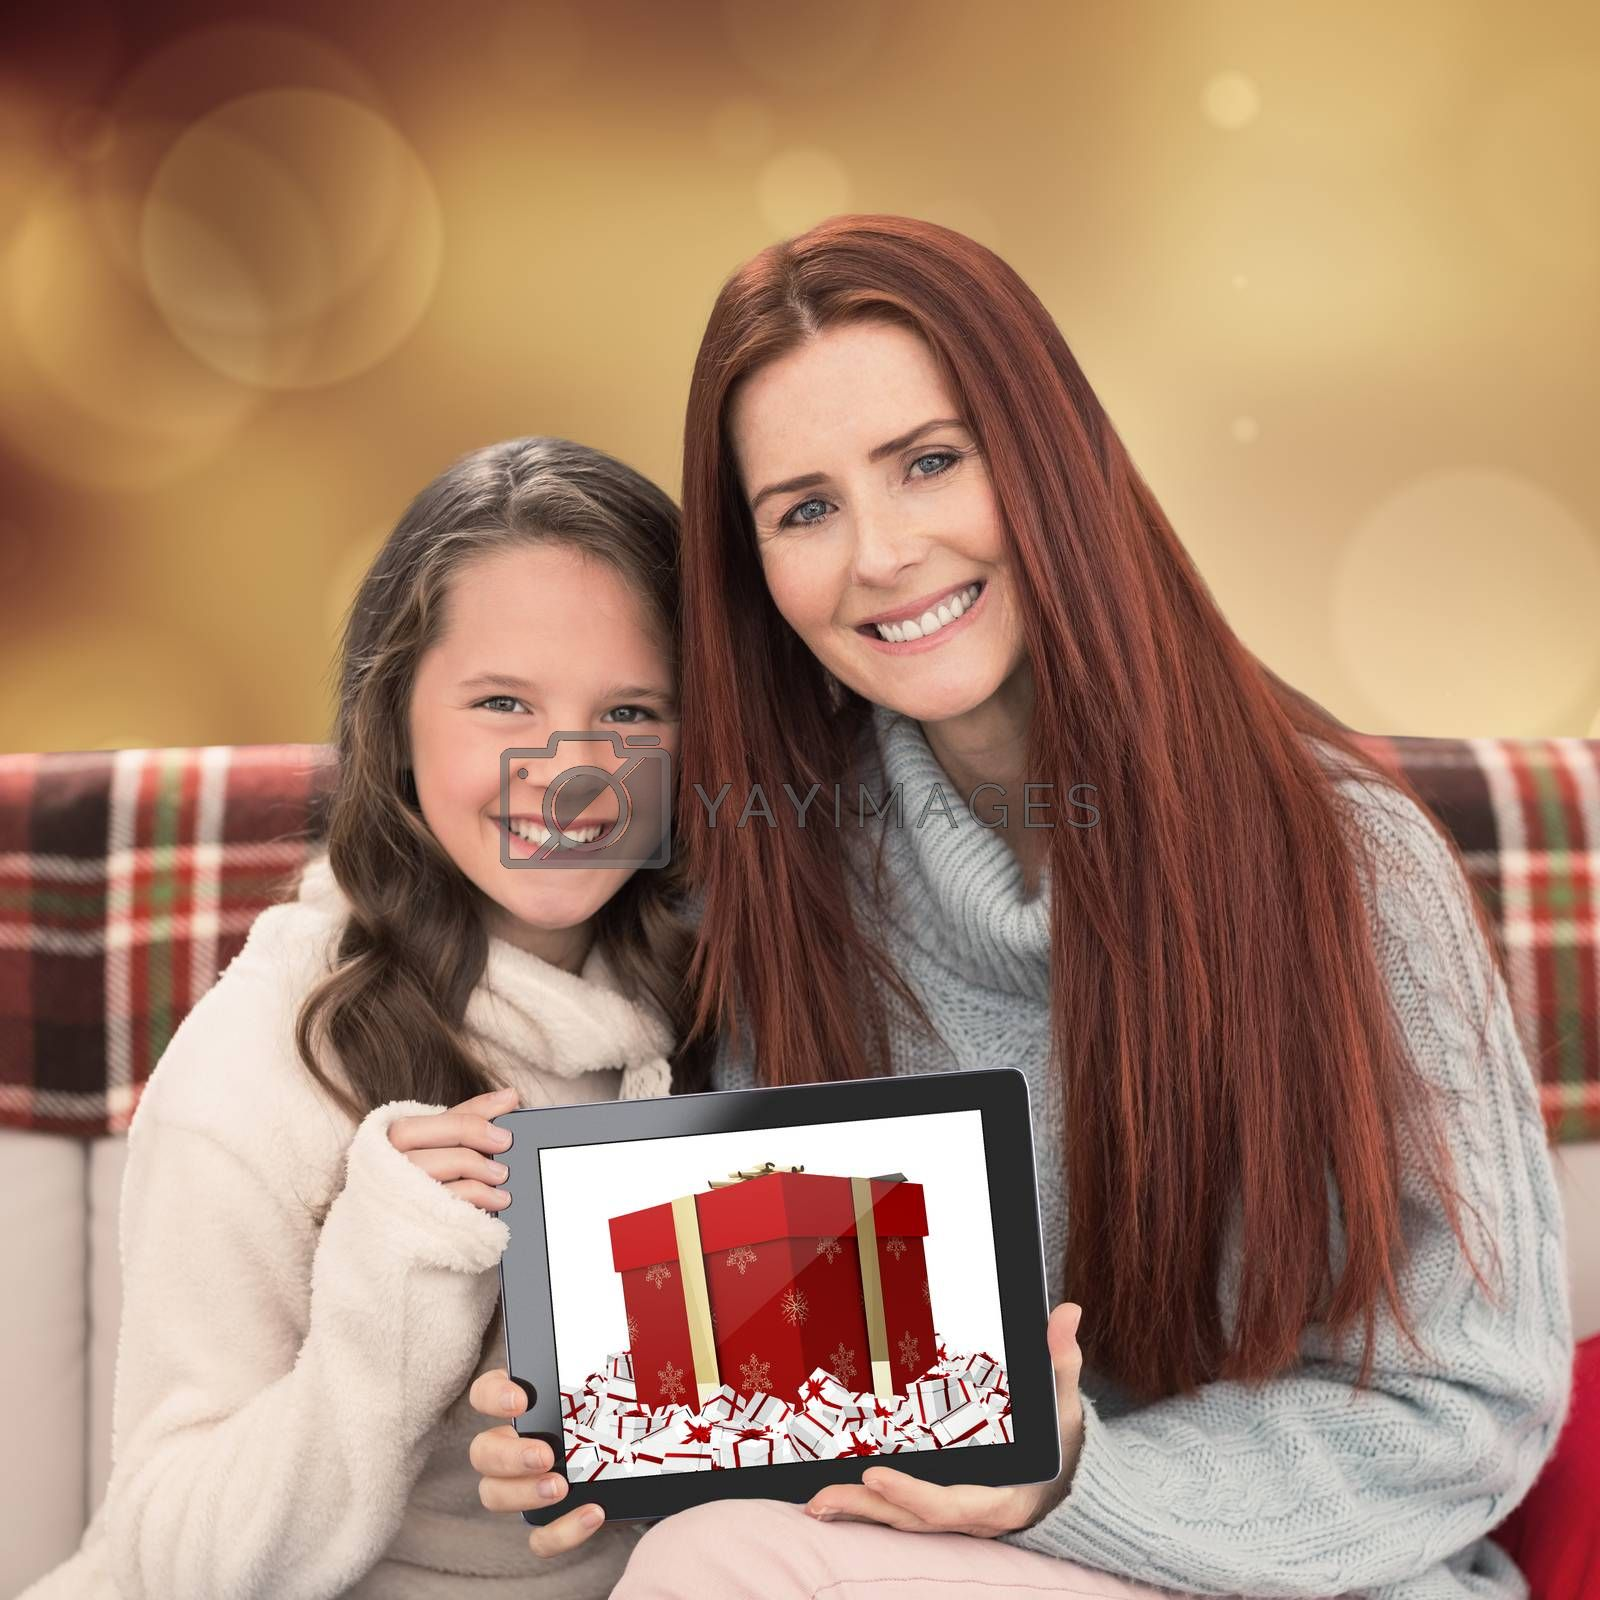 Mother and daughter showing tablet against orange abstract light spot design